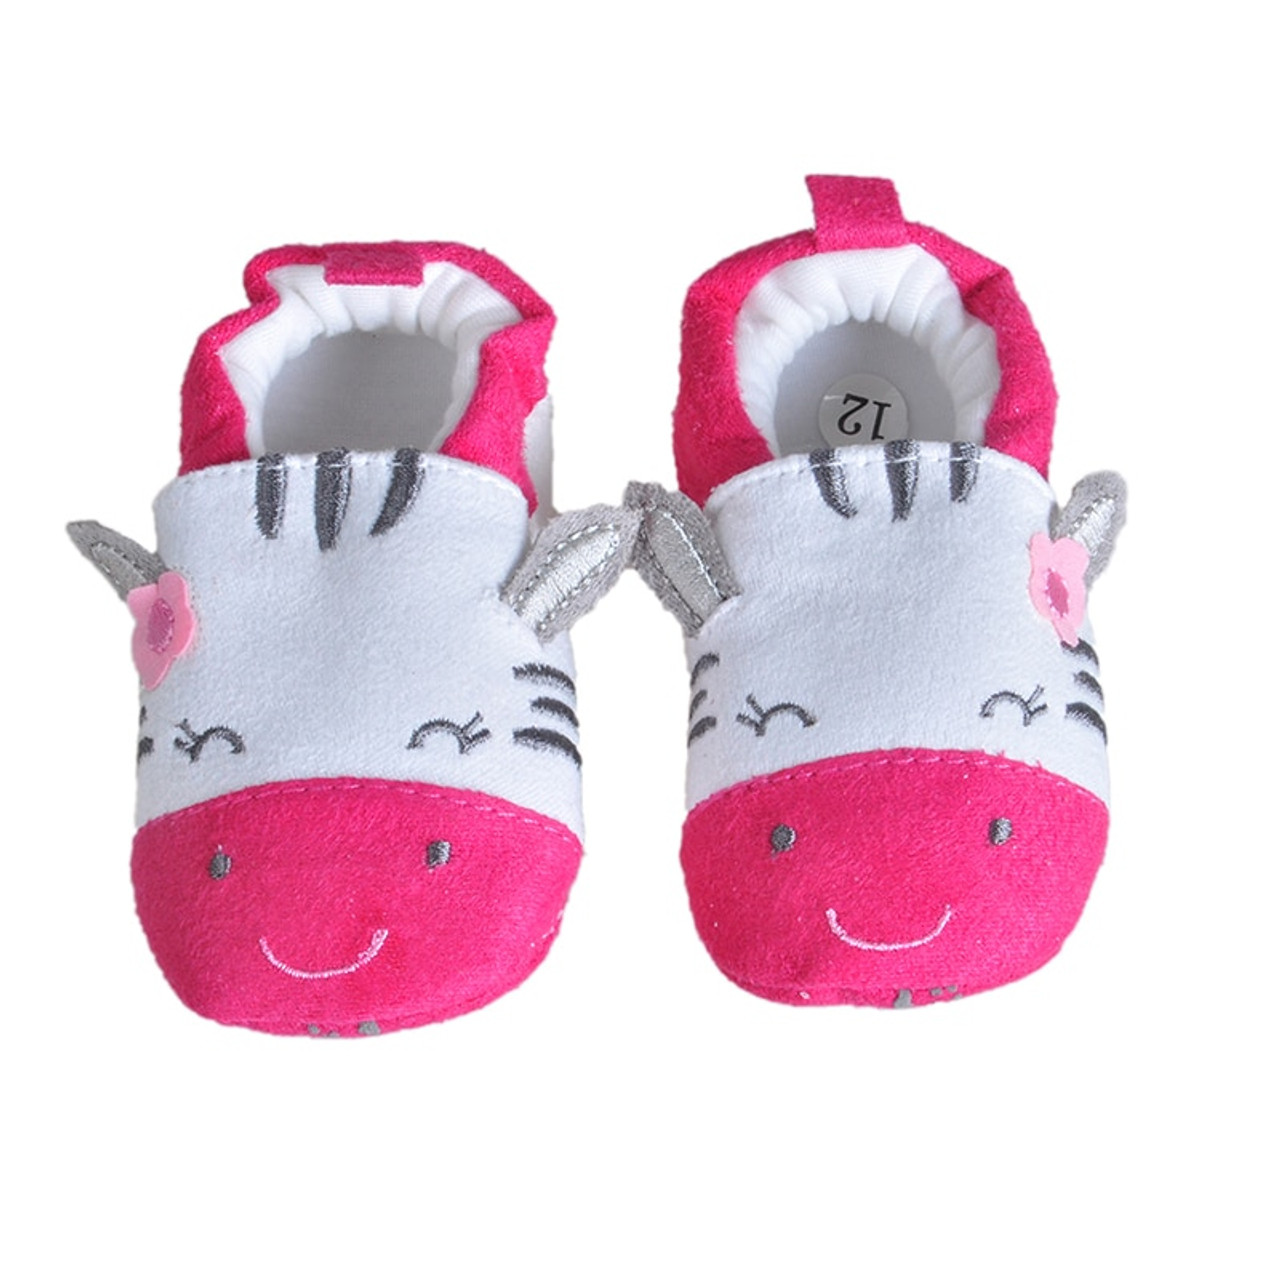 1802988e4 2017 New Style Newborn Baby Shoes Infant Shoes Winter Soft Cotton ...